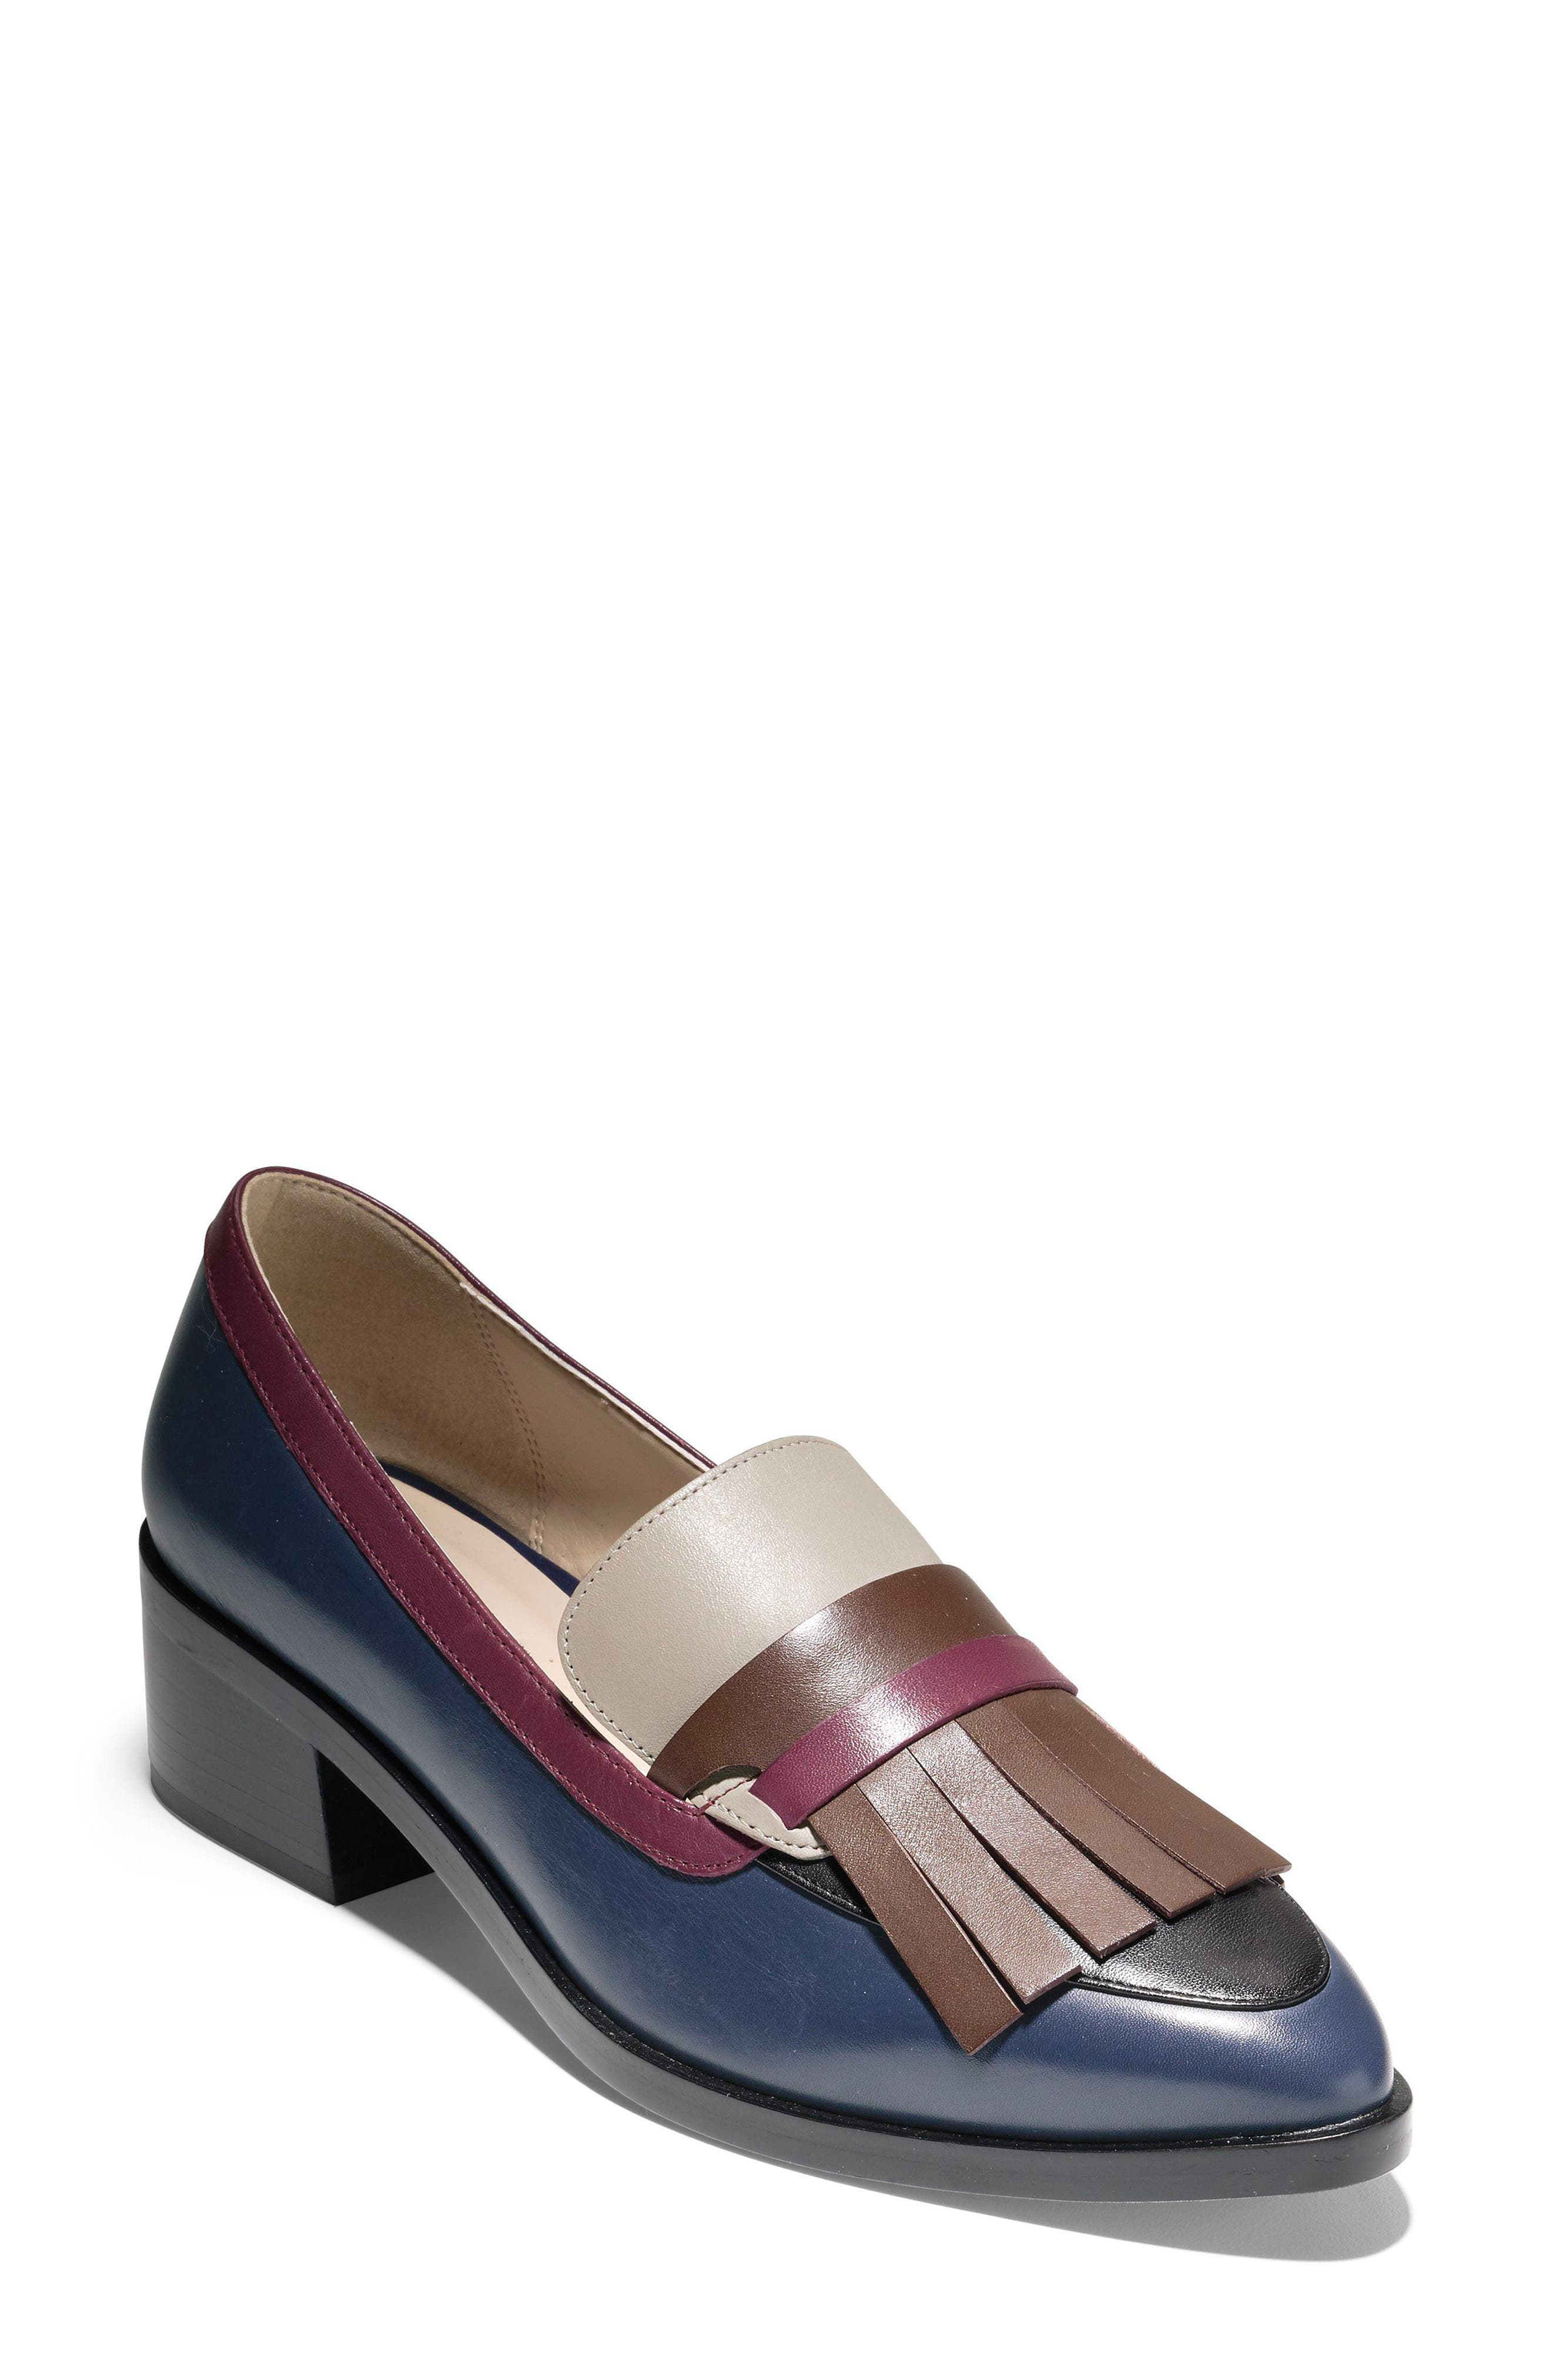 Margarite Loafer Pump,                             Main thumbnail 1, color,                             Marine Blue Leather